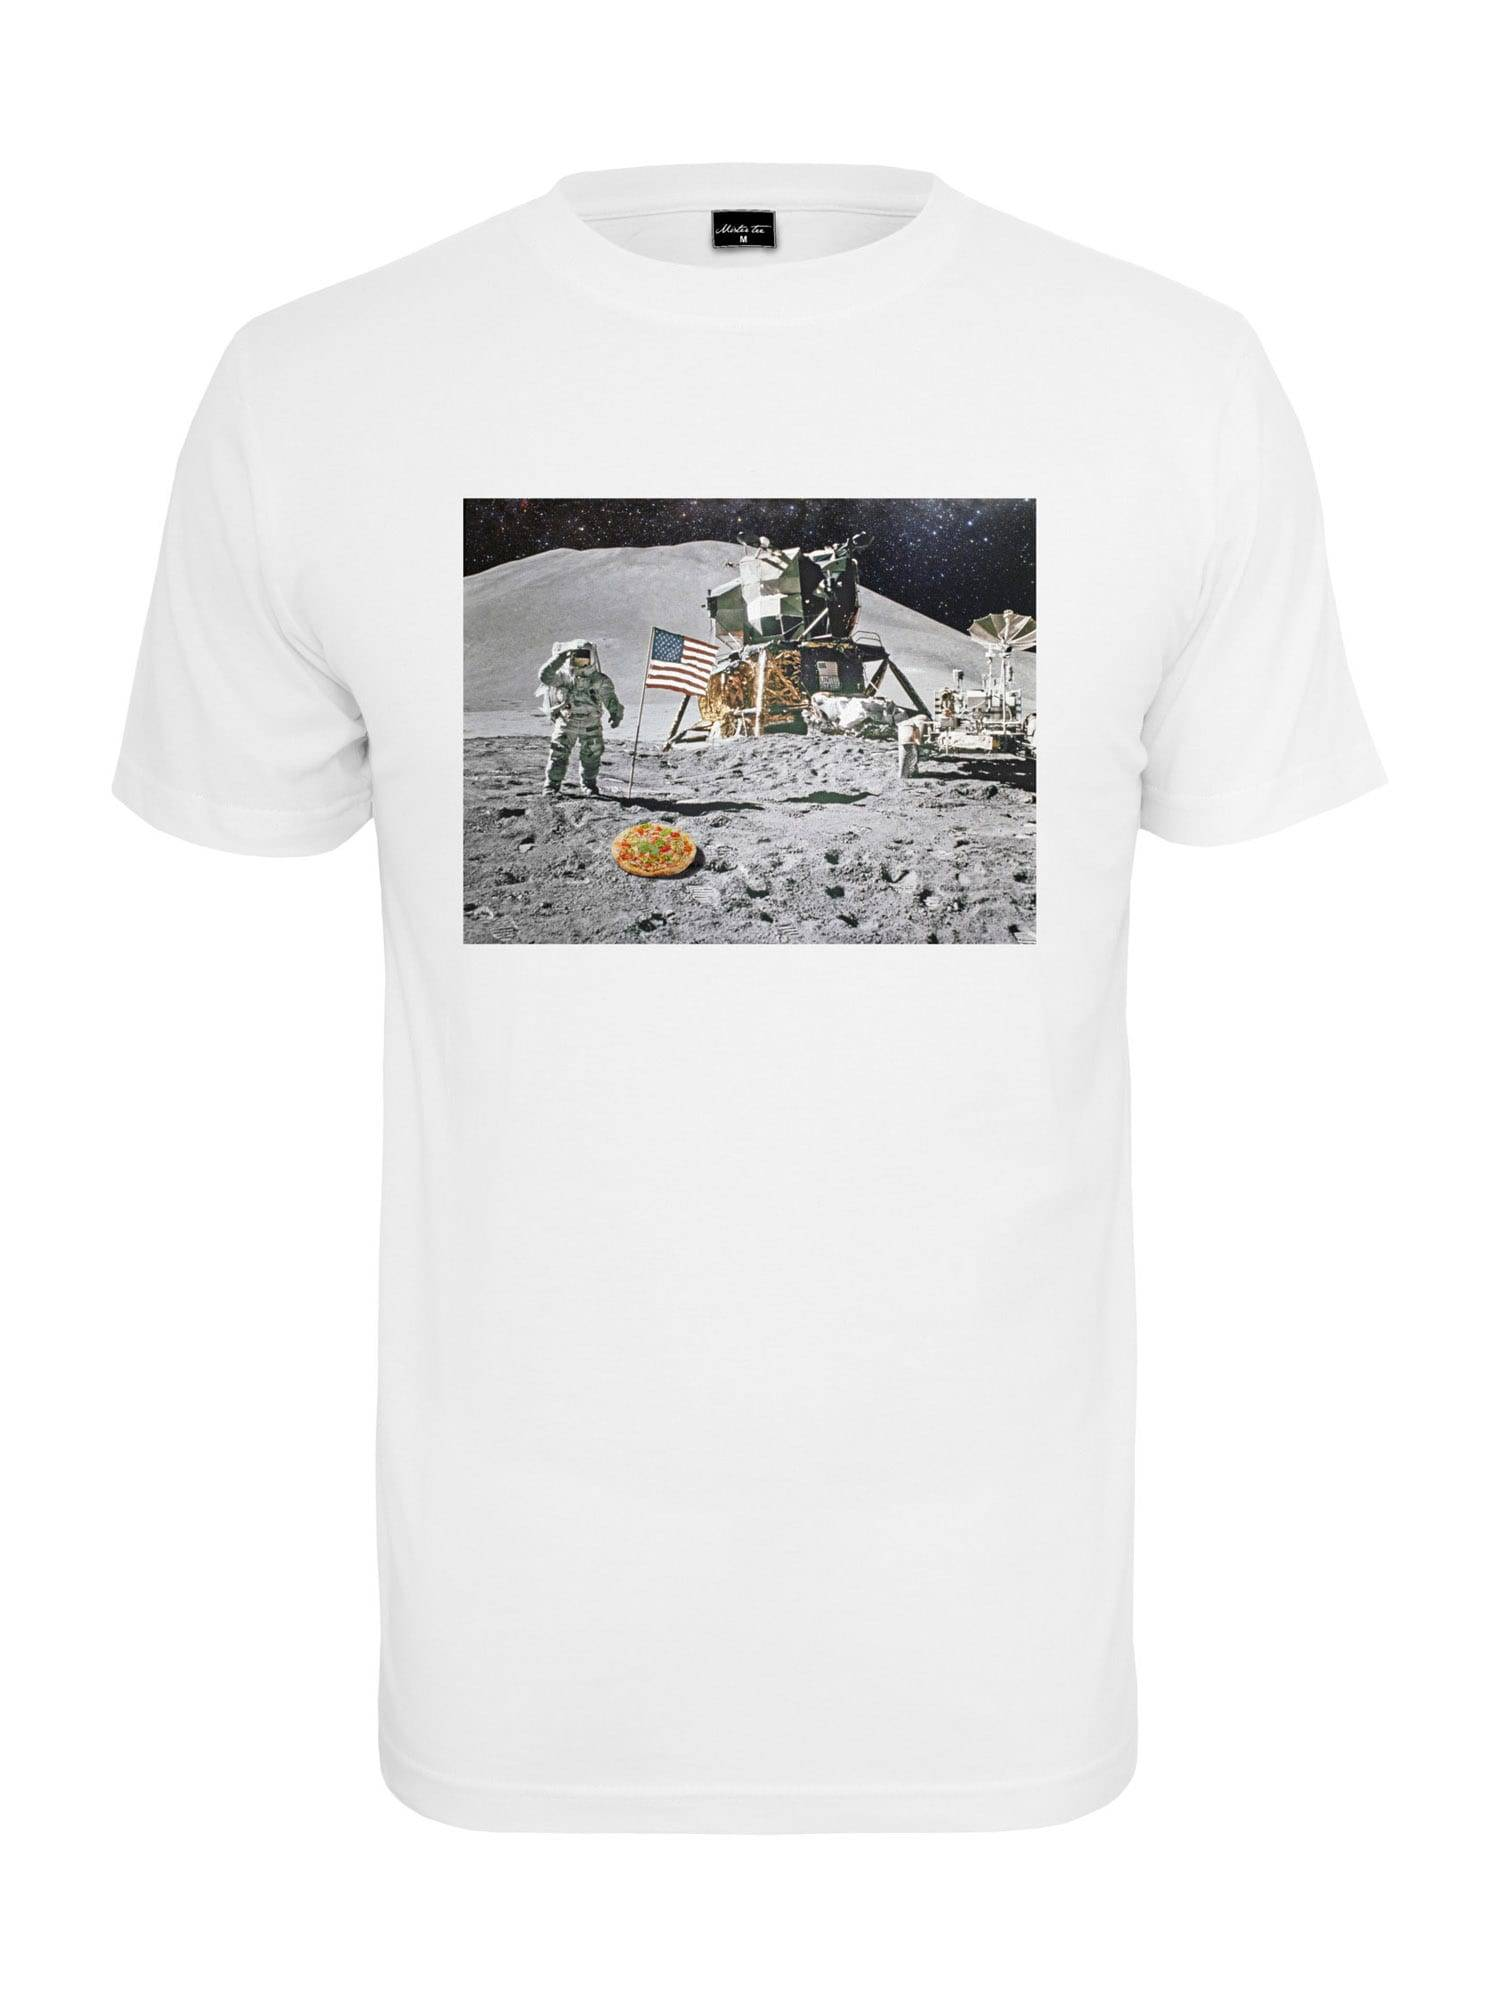 Tee T-Shirt 'Pizza Moon'  - Blanc - Taille: XL - male